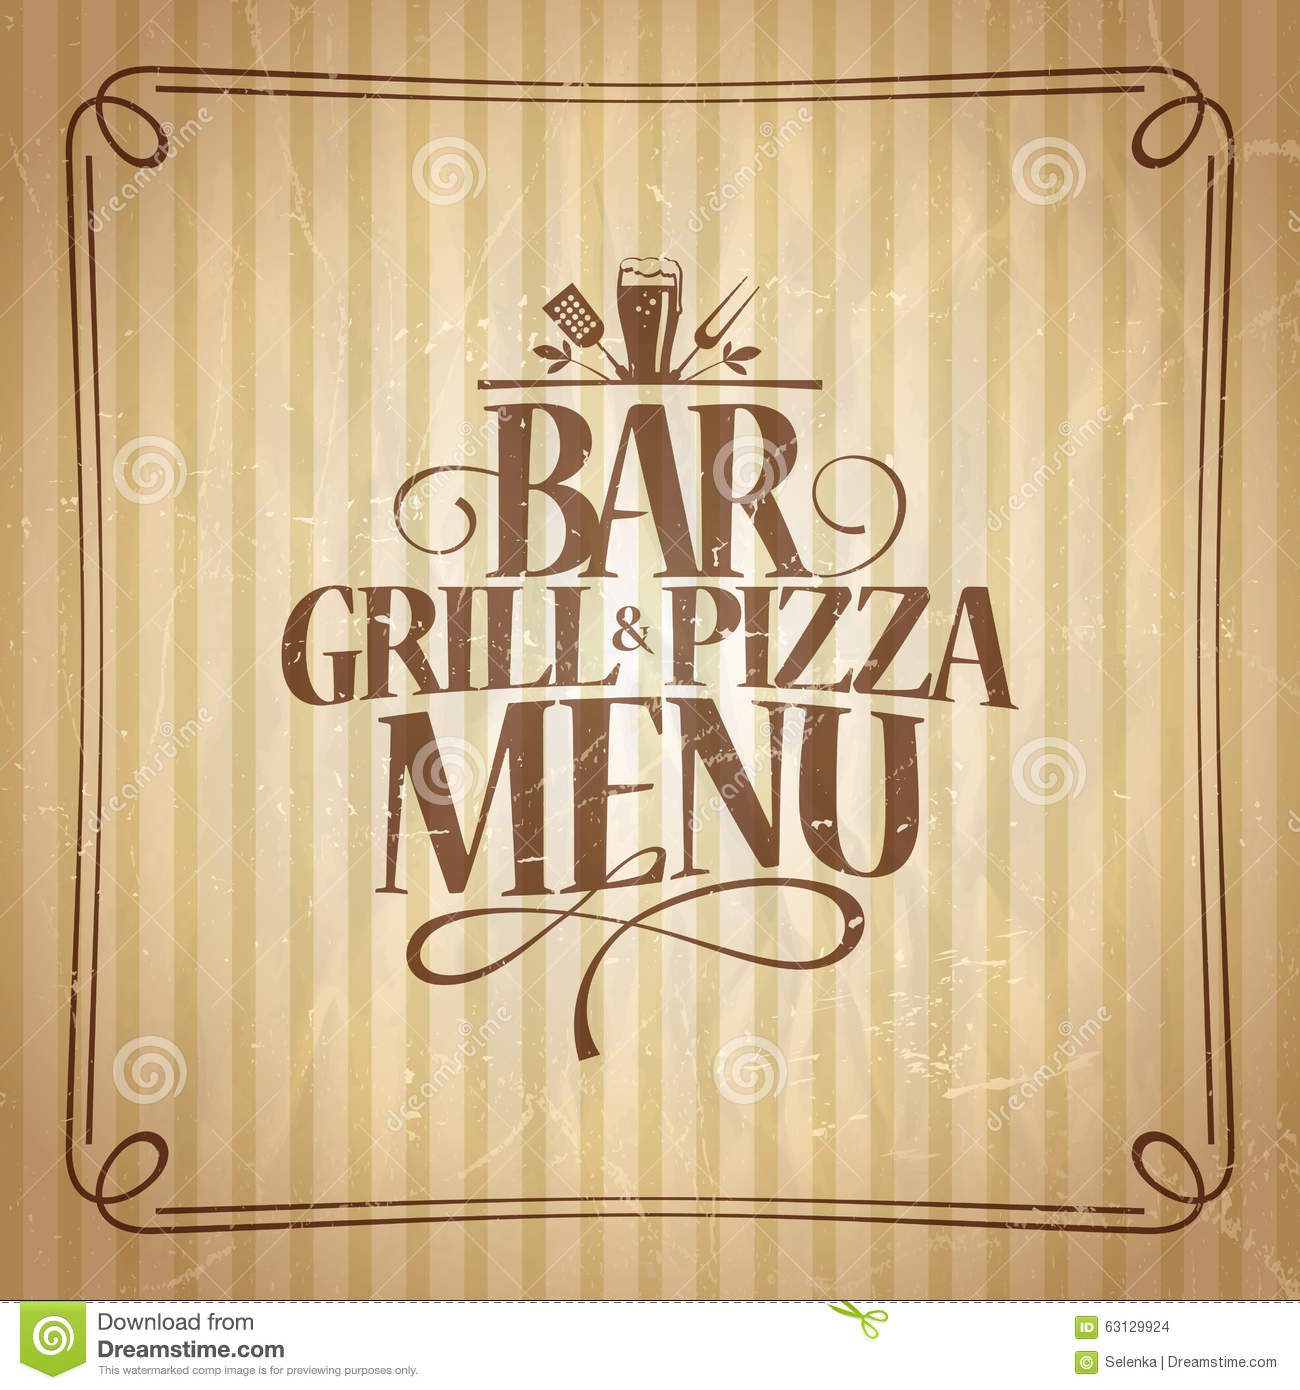 bar grill and pizza menu stock vector illustration of paper 63129924